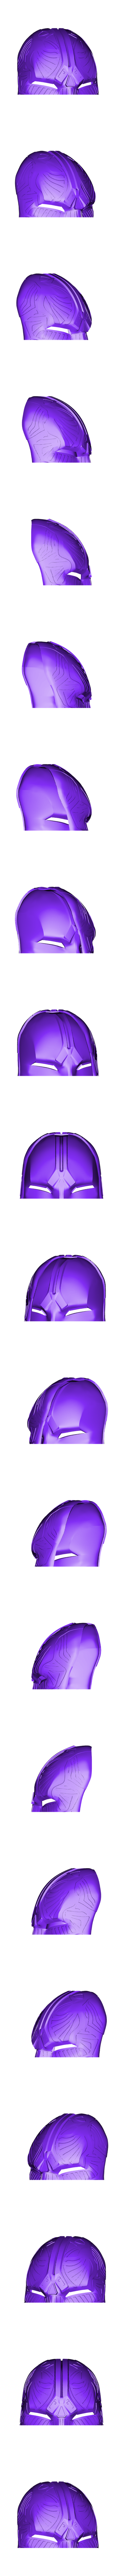 Part_7_v4.stl Download free STL file Sith Acolyte Mask (Star Wars) • 3D printing object, VillainousPropShop